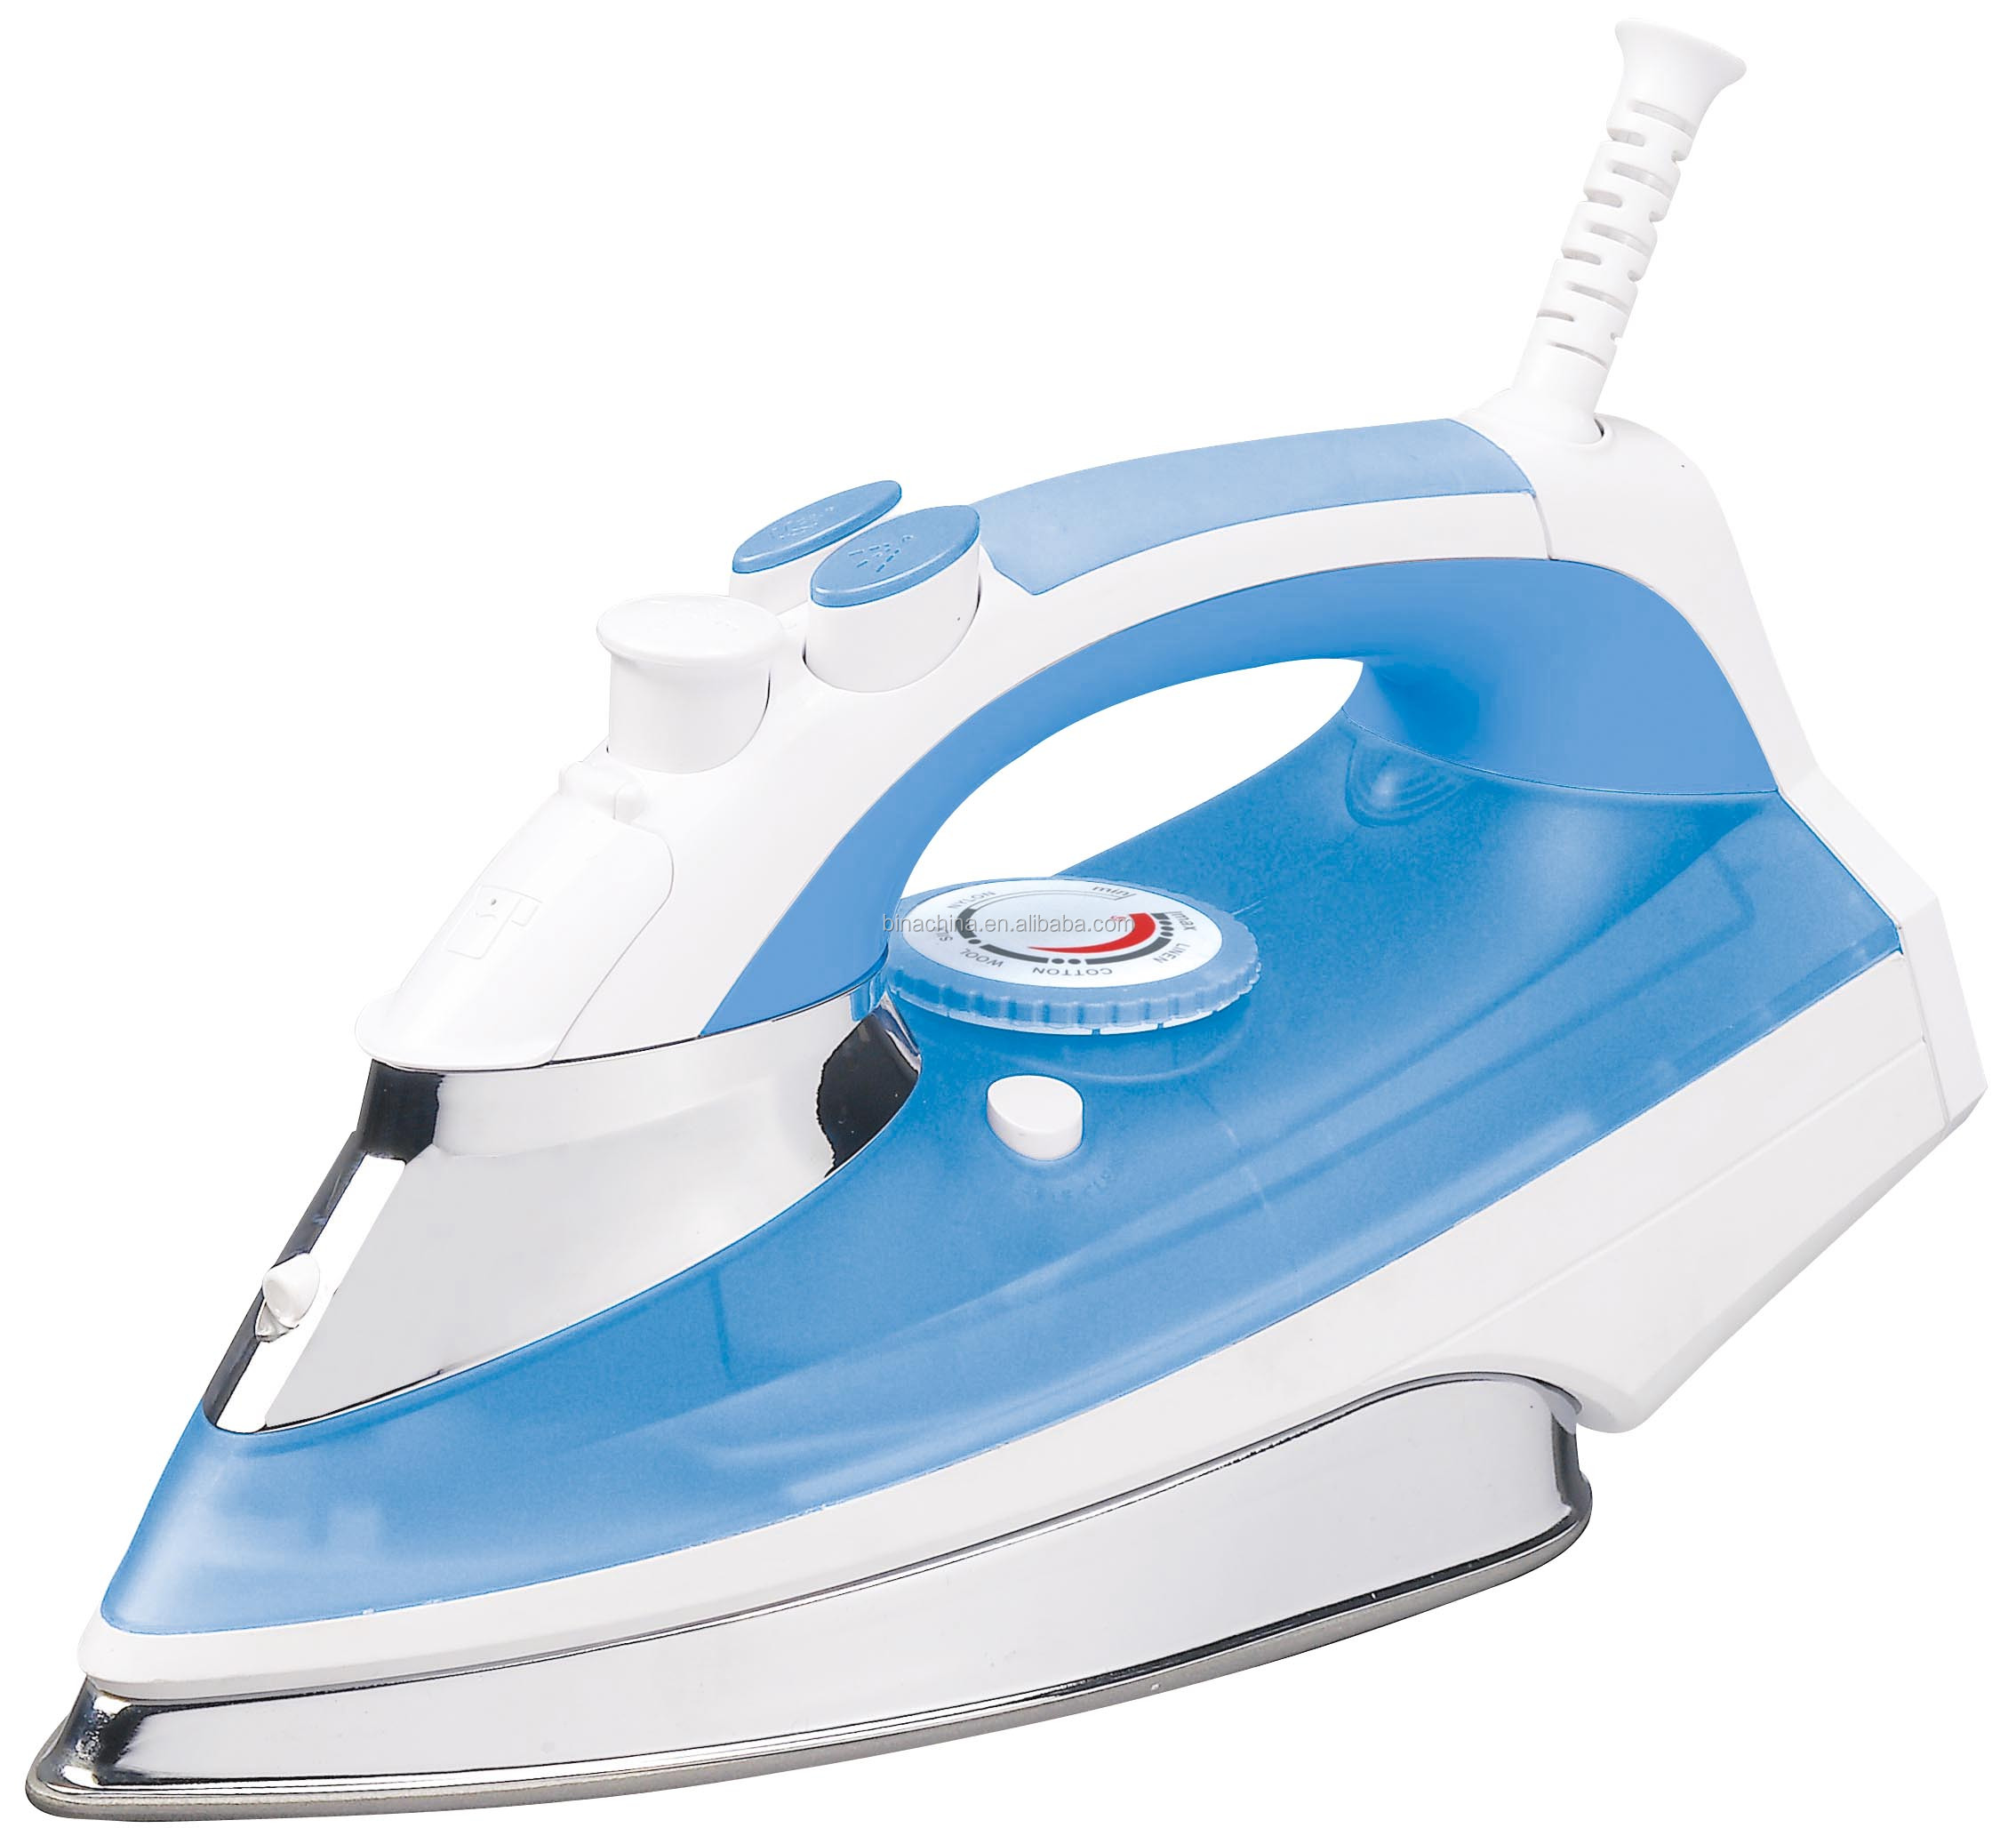 China Wholesale 2200W Industrial Steam Press Iron